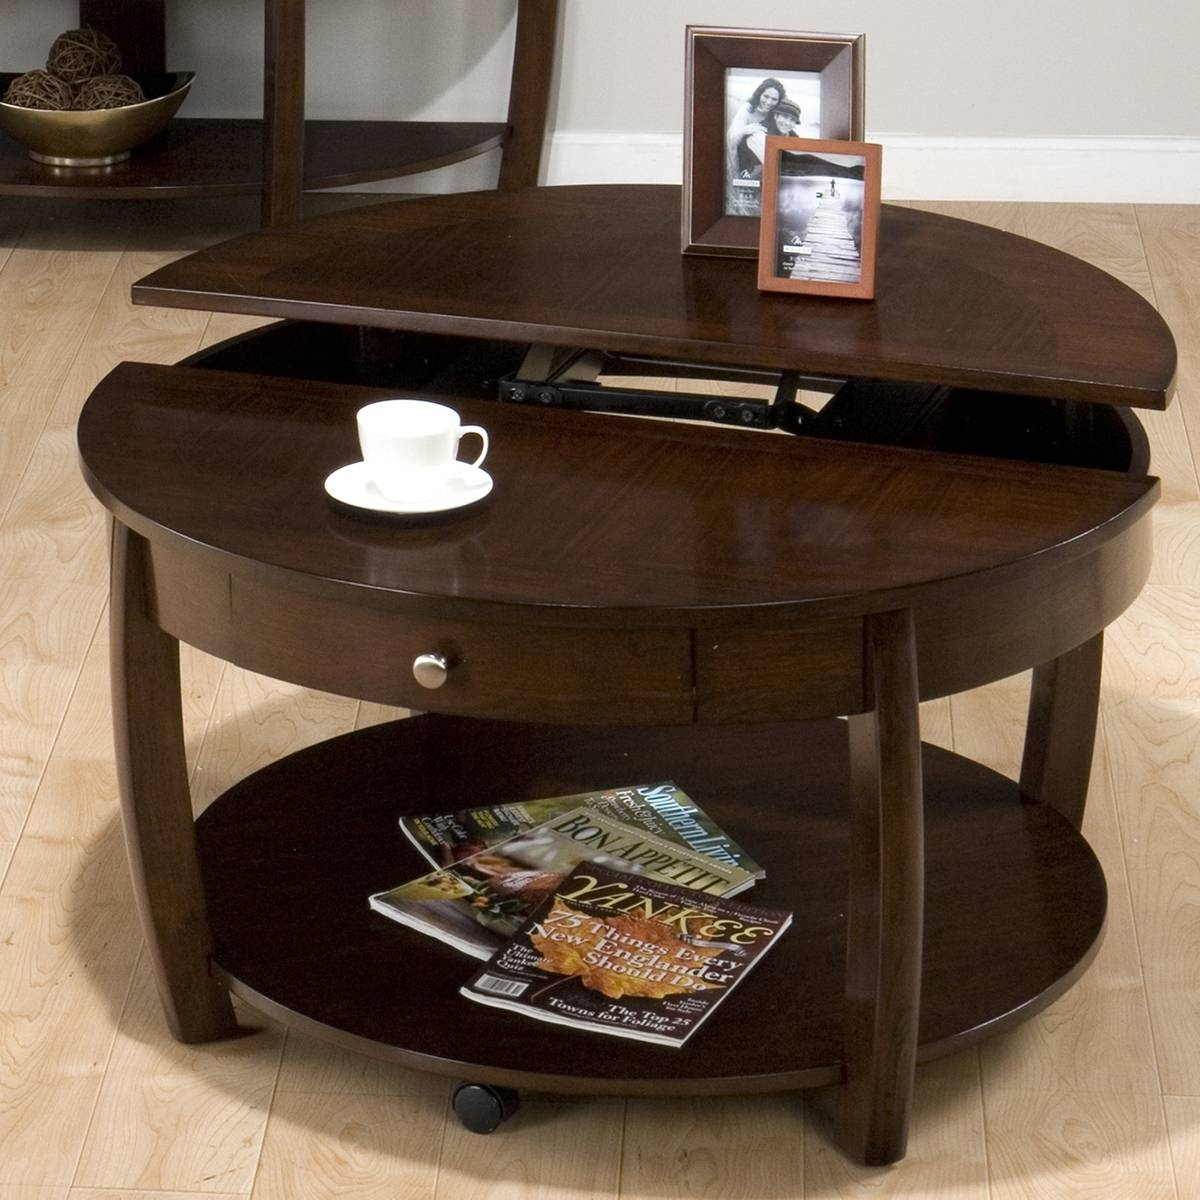 Walmart Coffee Table And End Tables | Coffee Tables Decoration regarding Round Coffee Tables With Drawers (Image 30 of 30)